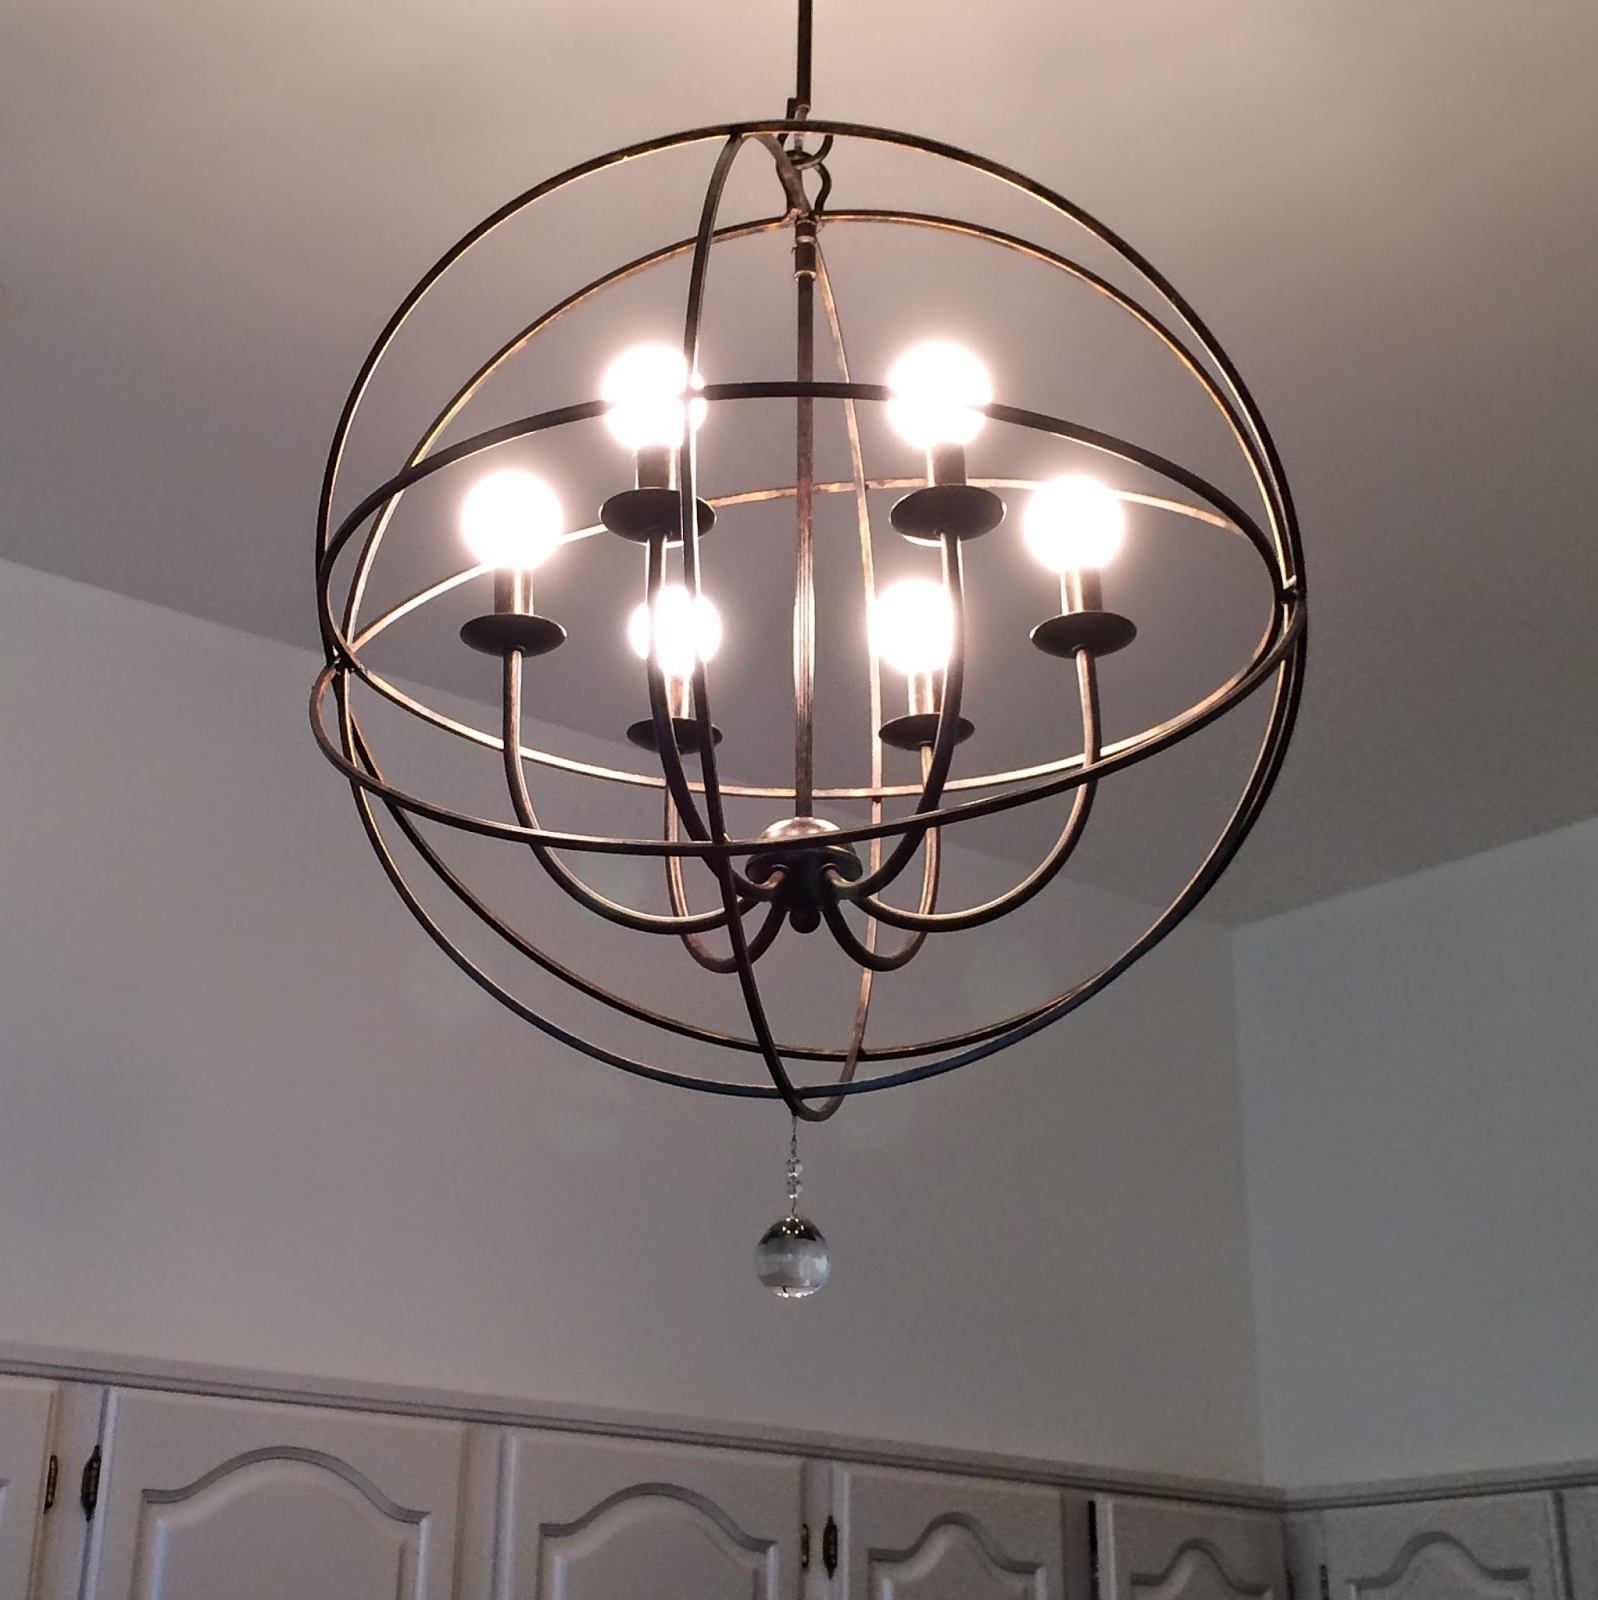 Well Known Lighting: Black Iron 6 Light Orb Chandelier For For Charming Kitchen With Orb Chandelier (View 12 of 15)